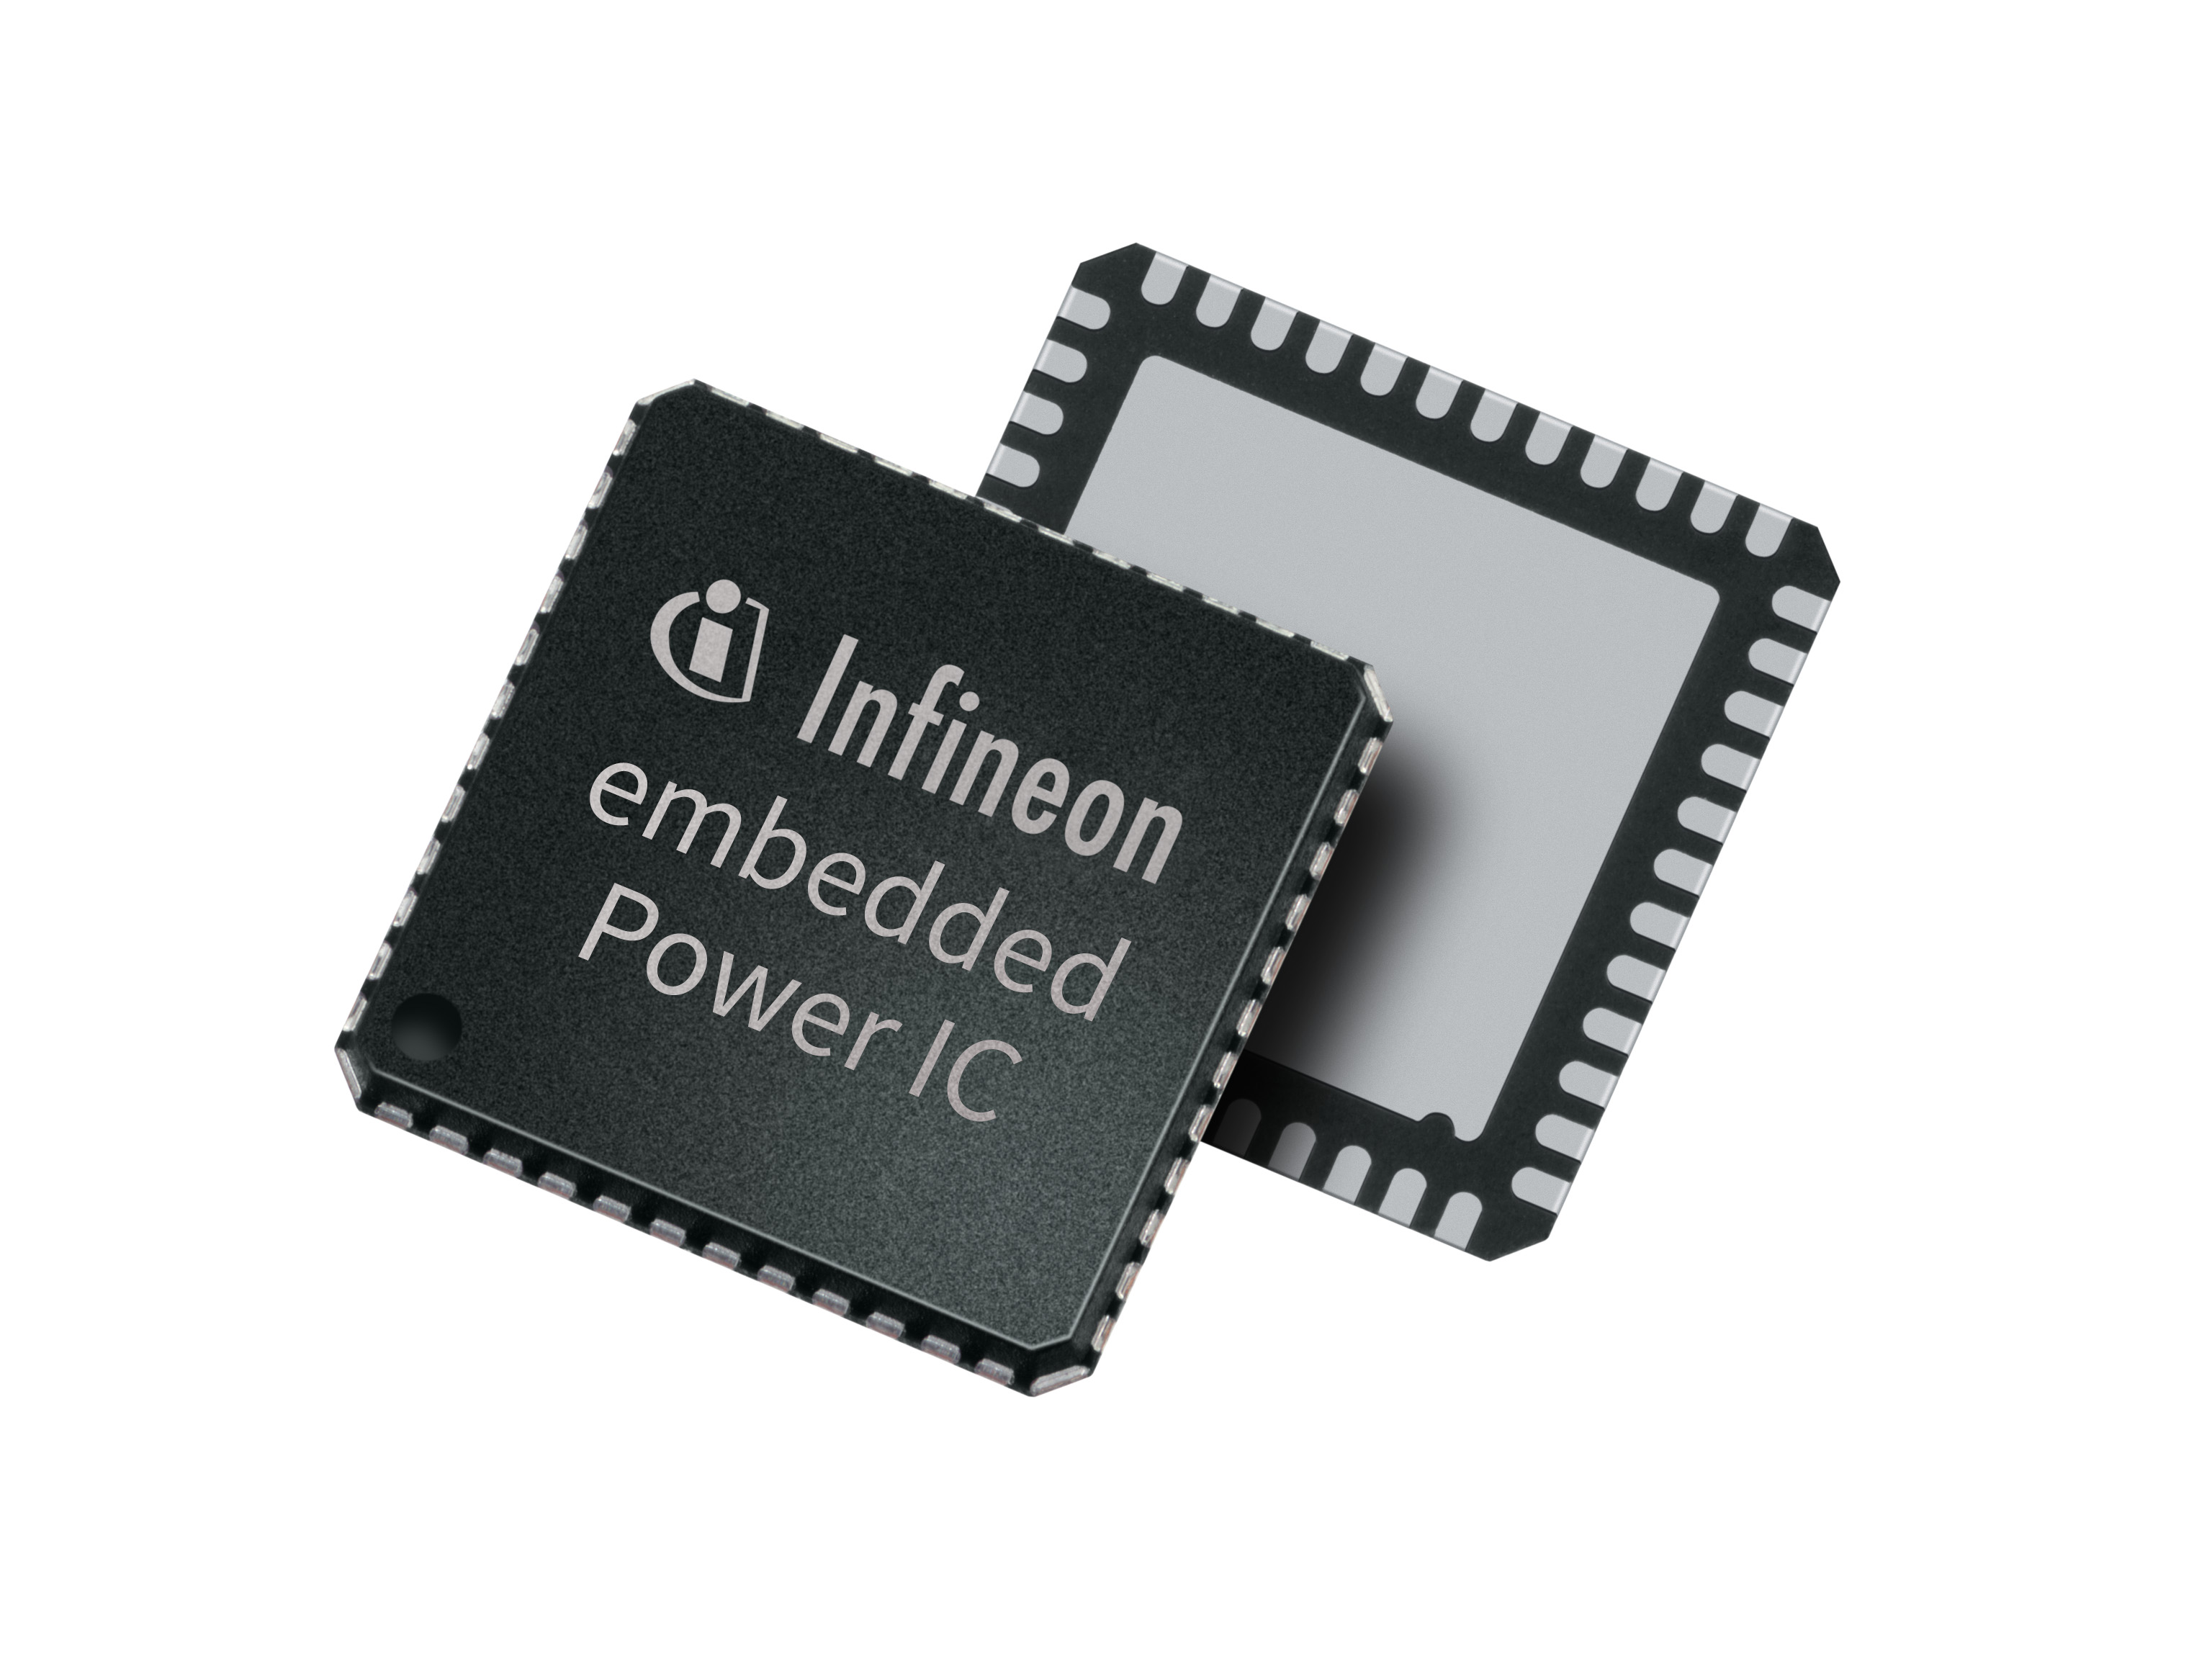 Snap Ic Photos On Pinterest 555 Timer Icblock Diagramworkingpin Out Configurationdata Sheet Infineon Launches Arm Based Auto Bridge Drivers